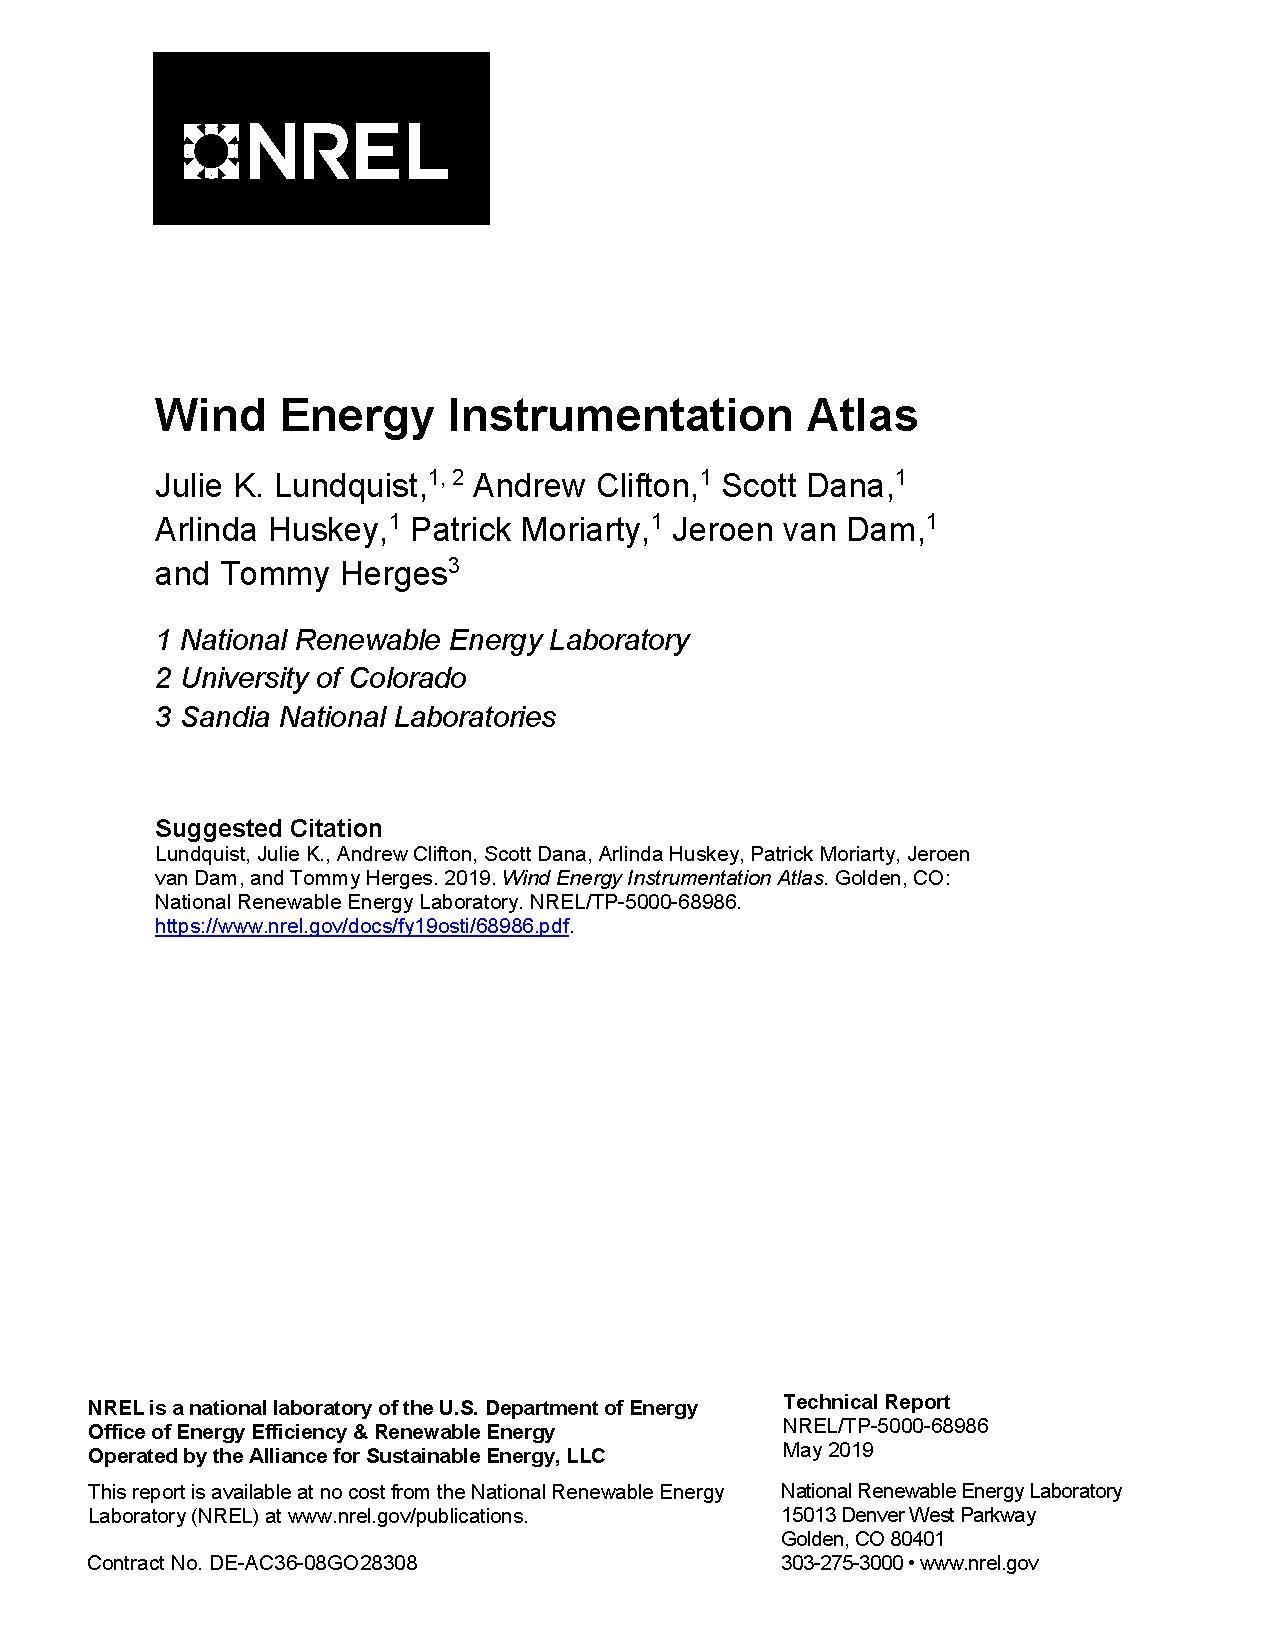 Inst atlas tp.pdf